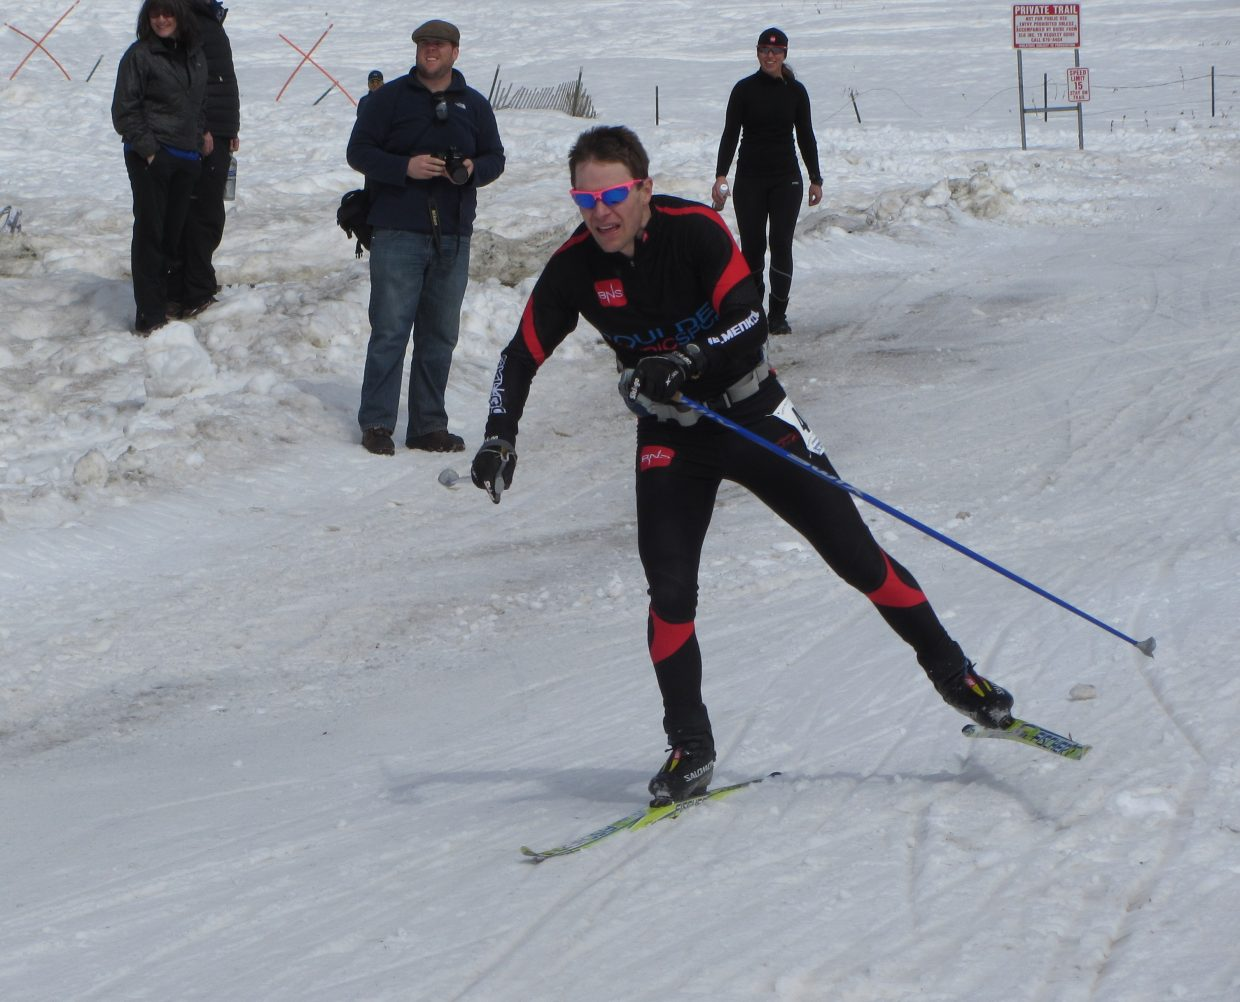 Dan Weinberger, who has won the Coureur des Bois event twice before, skis to a third-place finish Saturday.